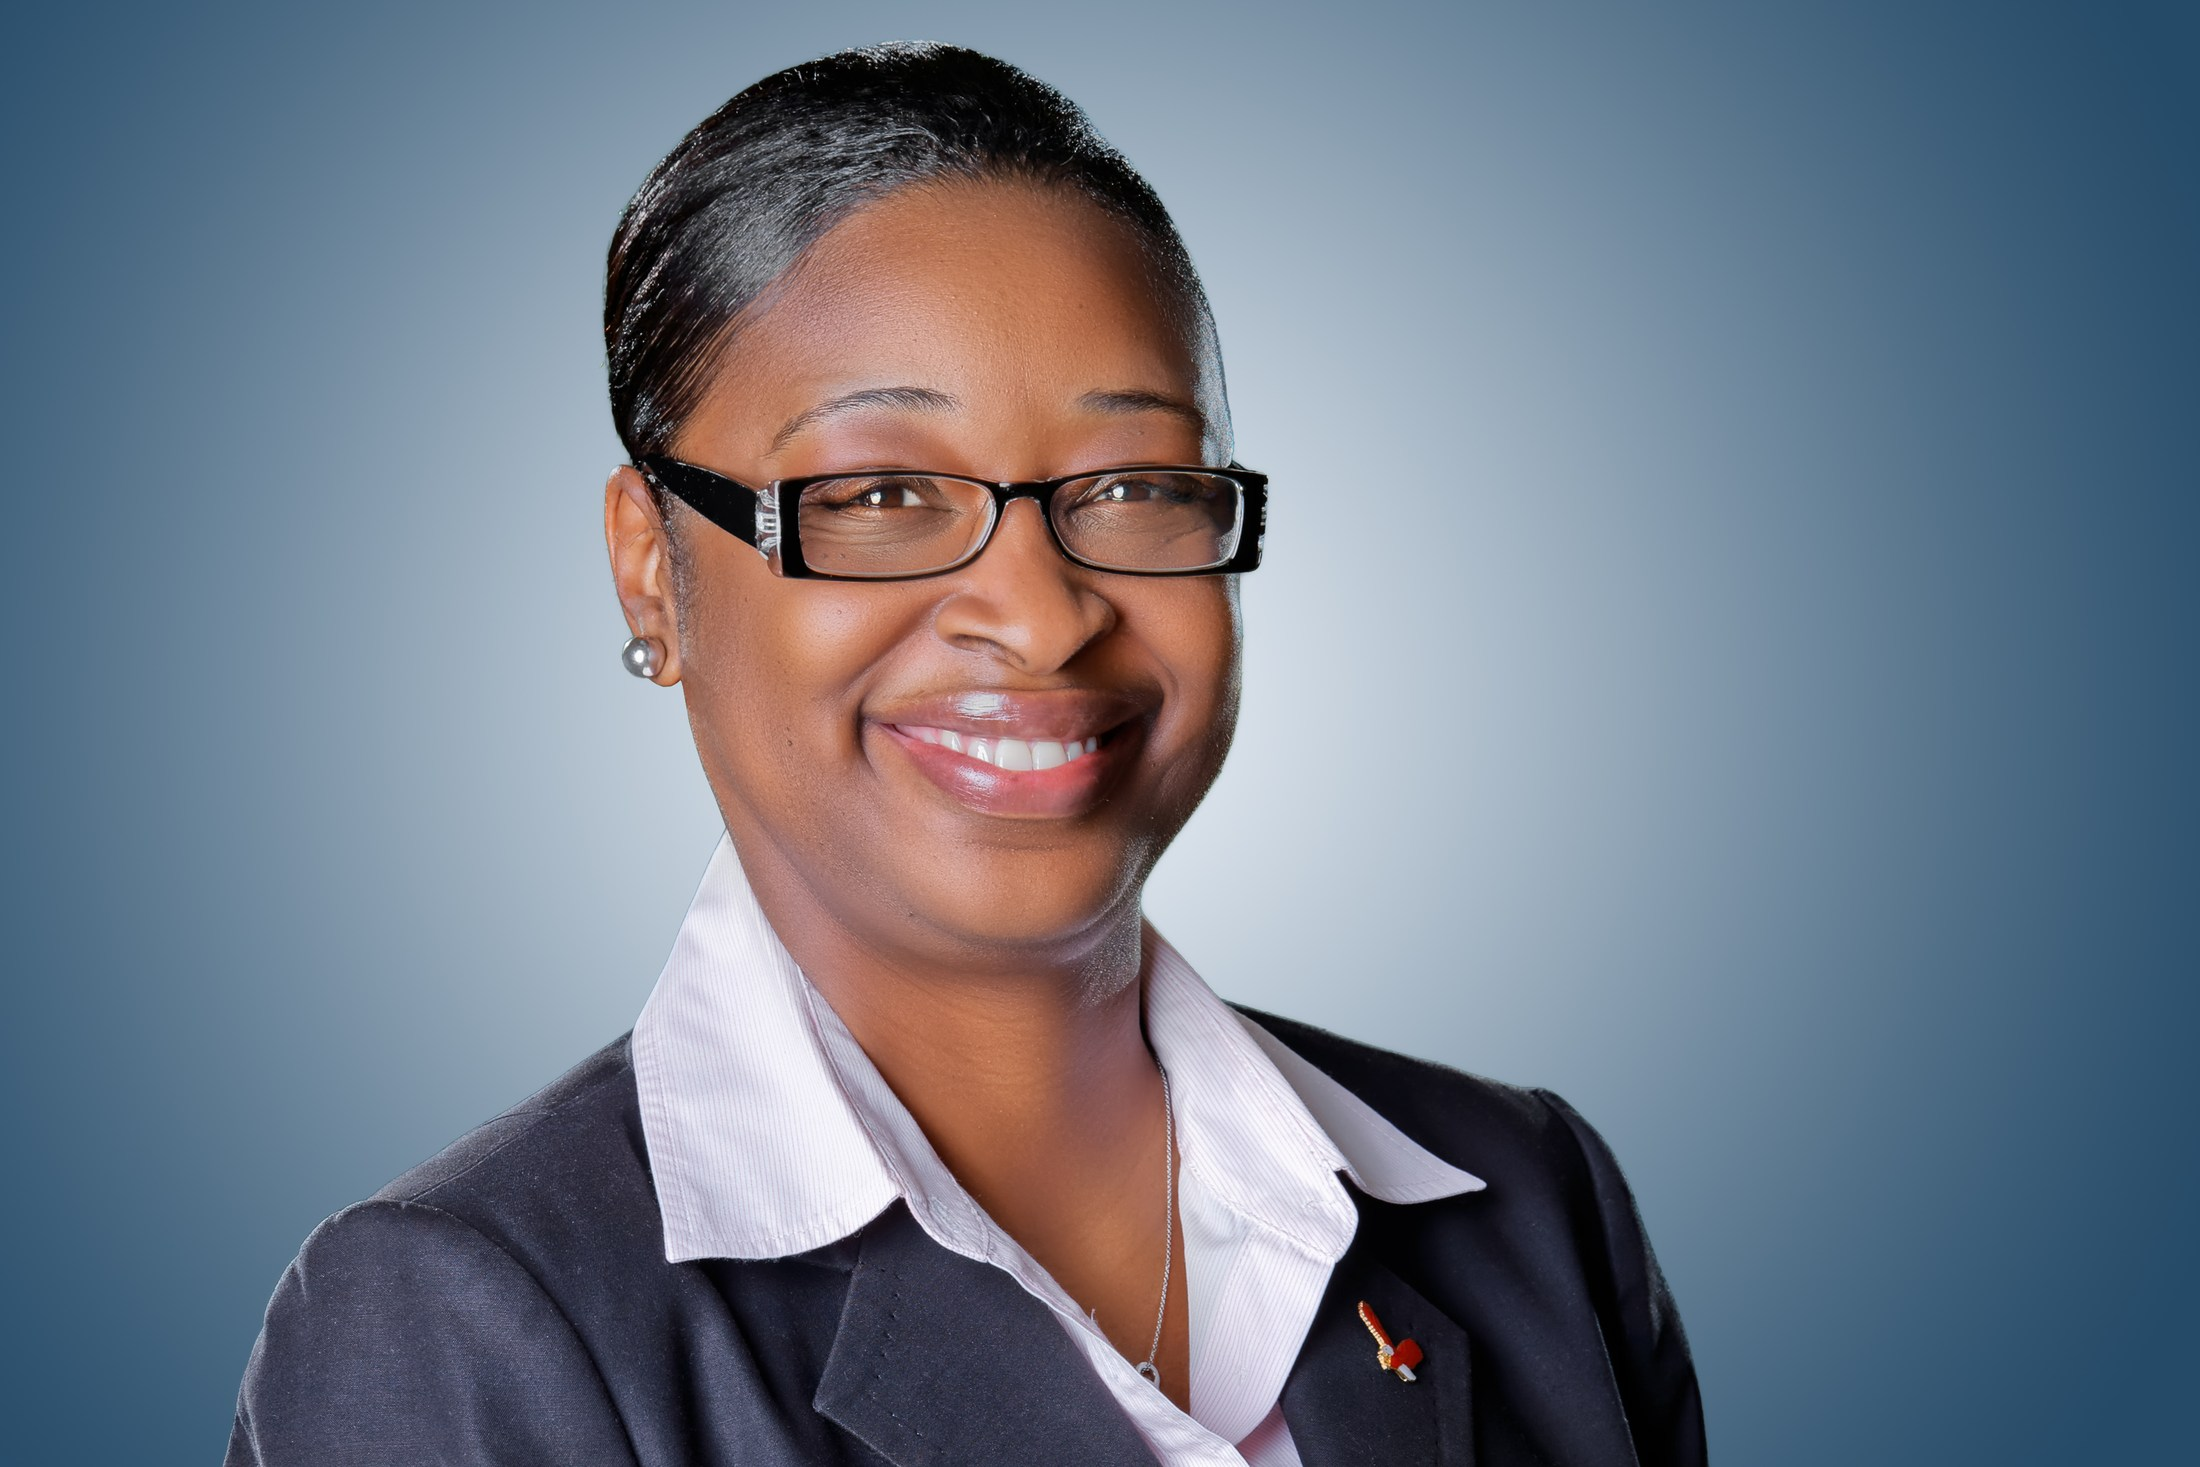 Chief Administrative Officer, Tonya Williams